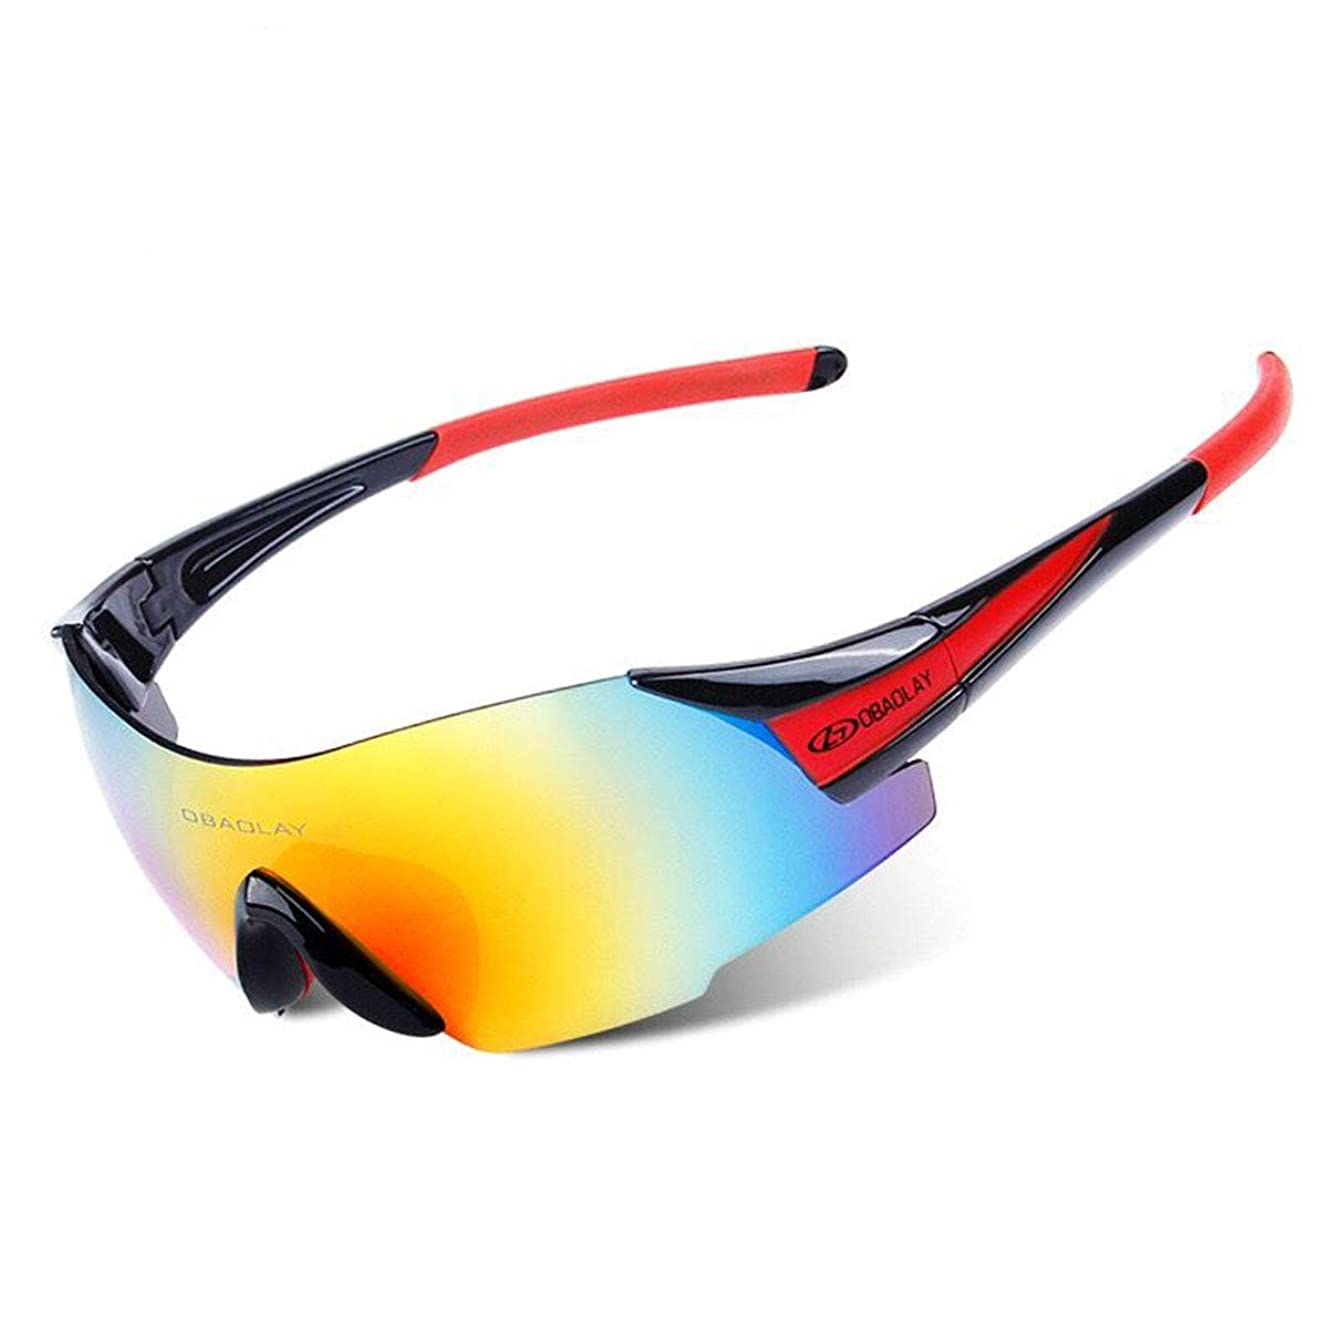 TRVIVOM Sports Sunglasses for Men Women Youth Baseball Cycling Running Driving Fishing Golf Motorcycle